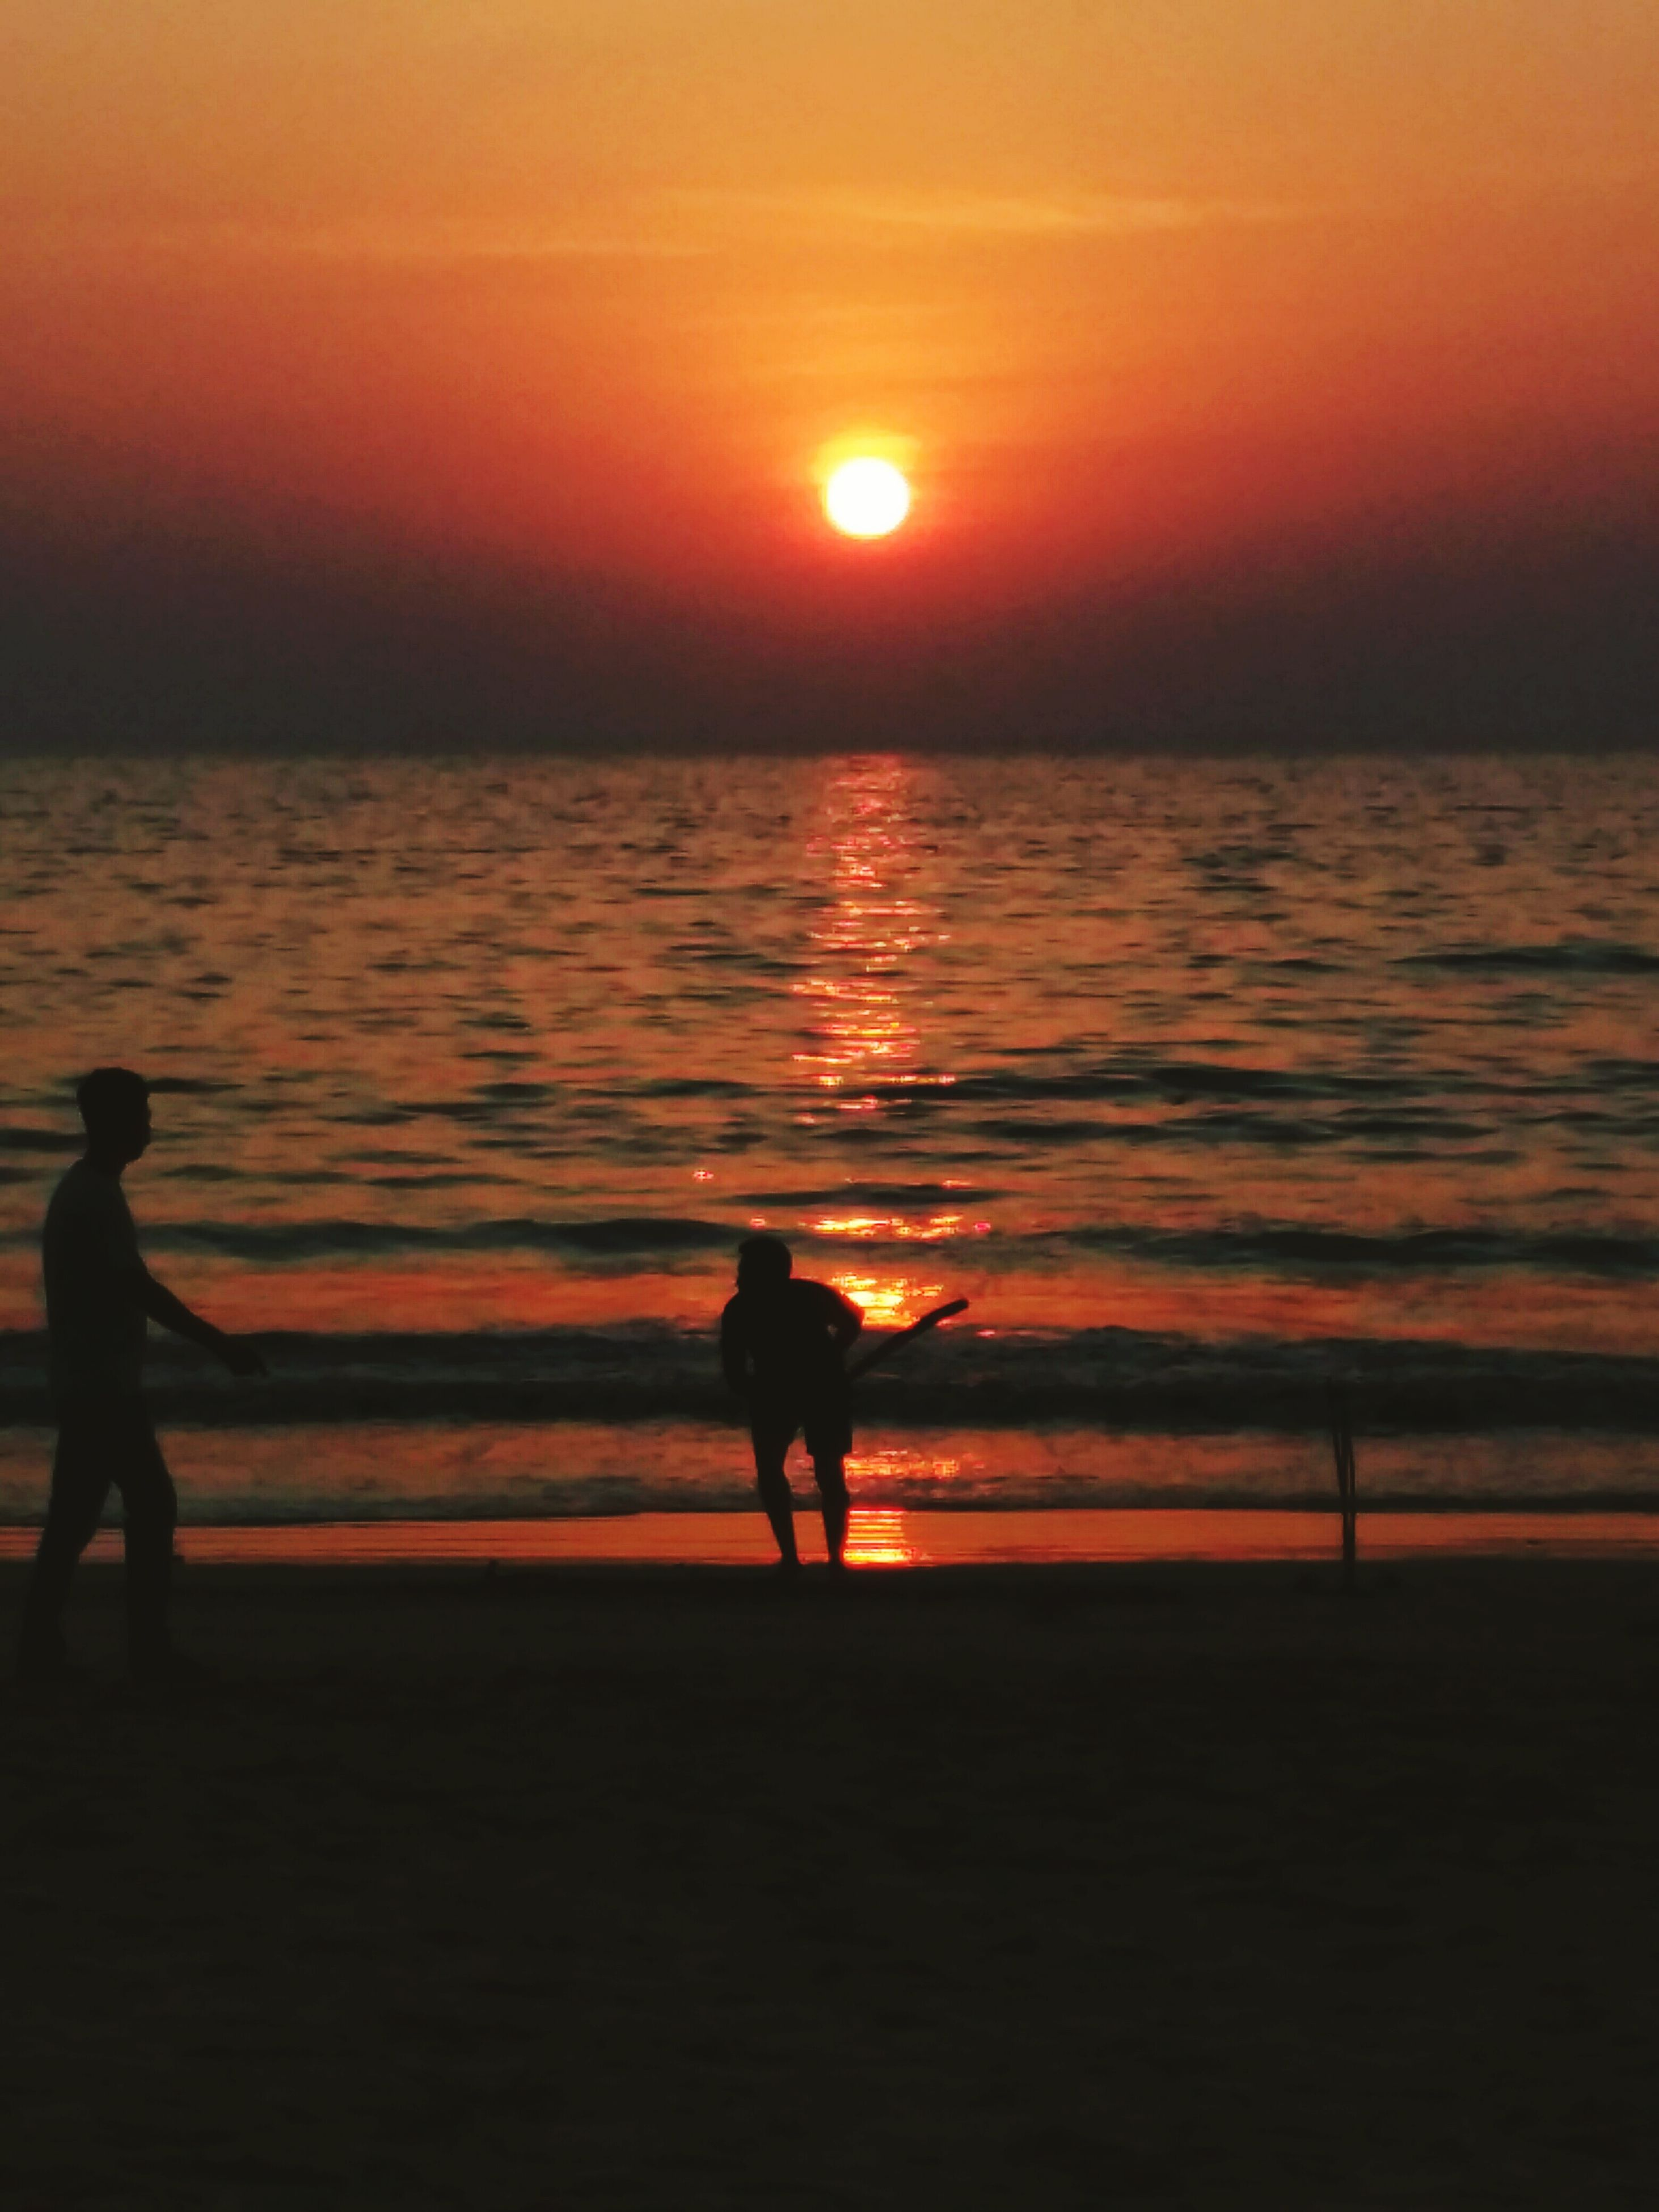 sunset, water, silhouette, sea, orange color, sun, horizon over water, scenics, beach, beauty in nature, tranquil scene, reflection, men, tranquility, leisure activity, lifestyles, sky, shore, idyllic